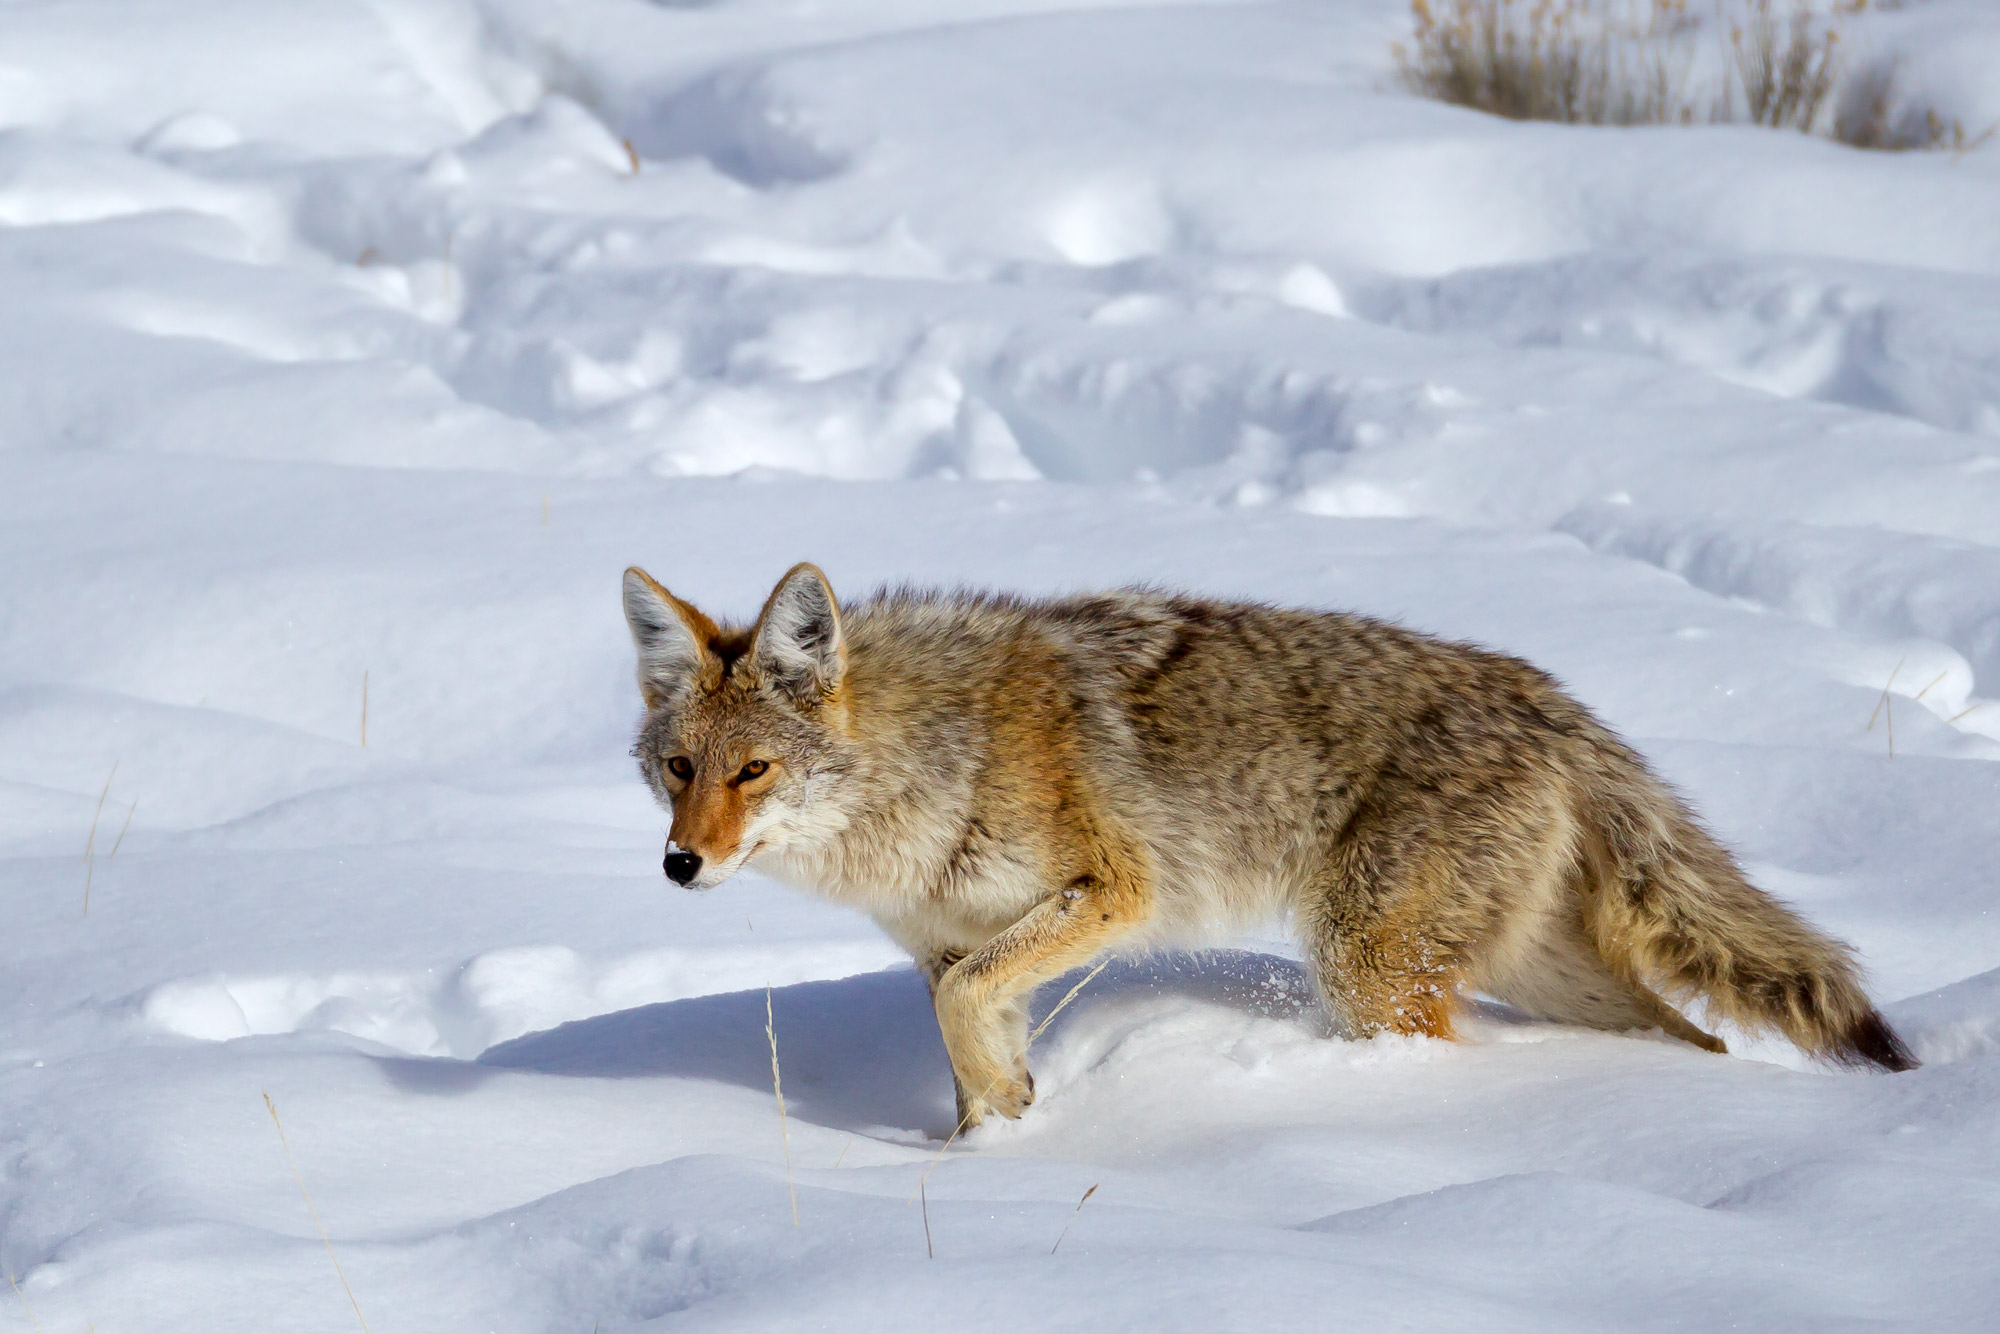 Coyote Fine Art Photography A Limited Edition photograph of a Coyote getting through the deep snow at Yellowstone National Park...